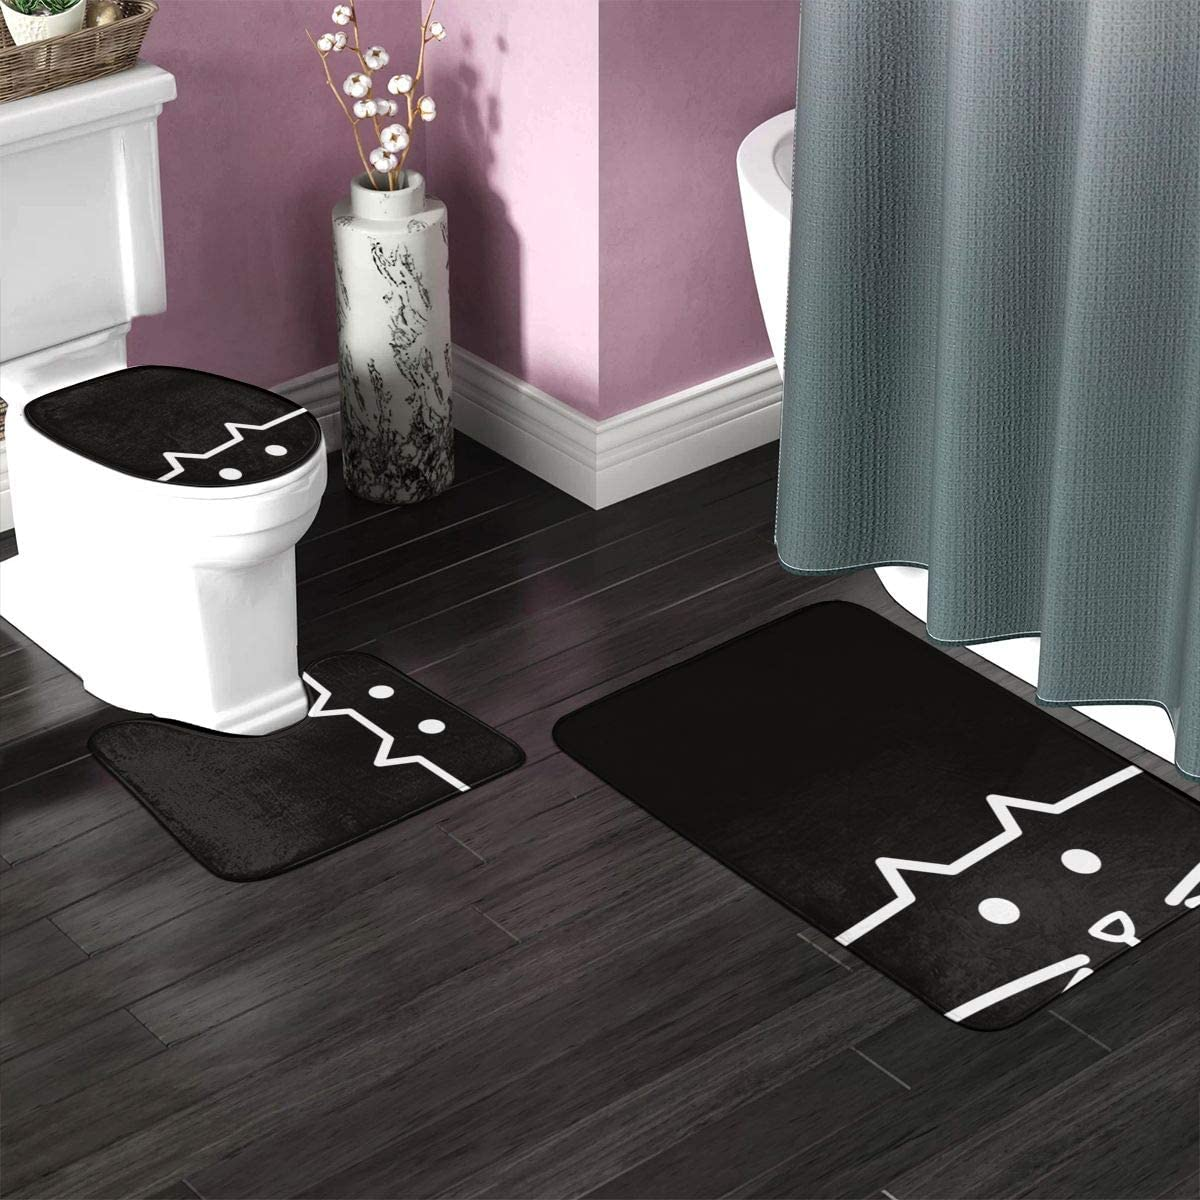 Toilet seat Cover 3pcs Set Bathroom Mat Antiskid Pad You Didnt Rescue A Cat Rescued You Animal Shelters Near Me 50 80cm